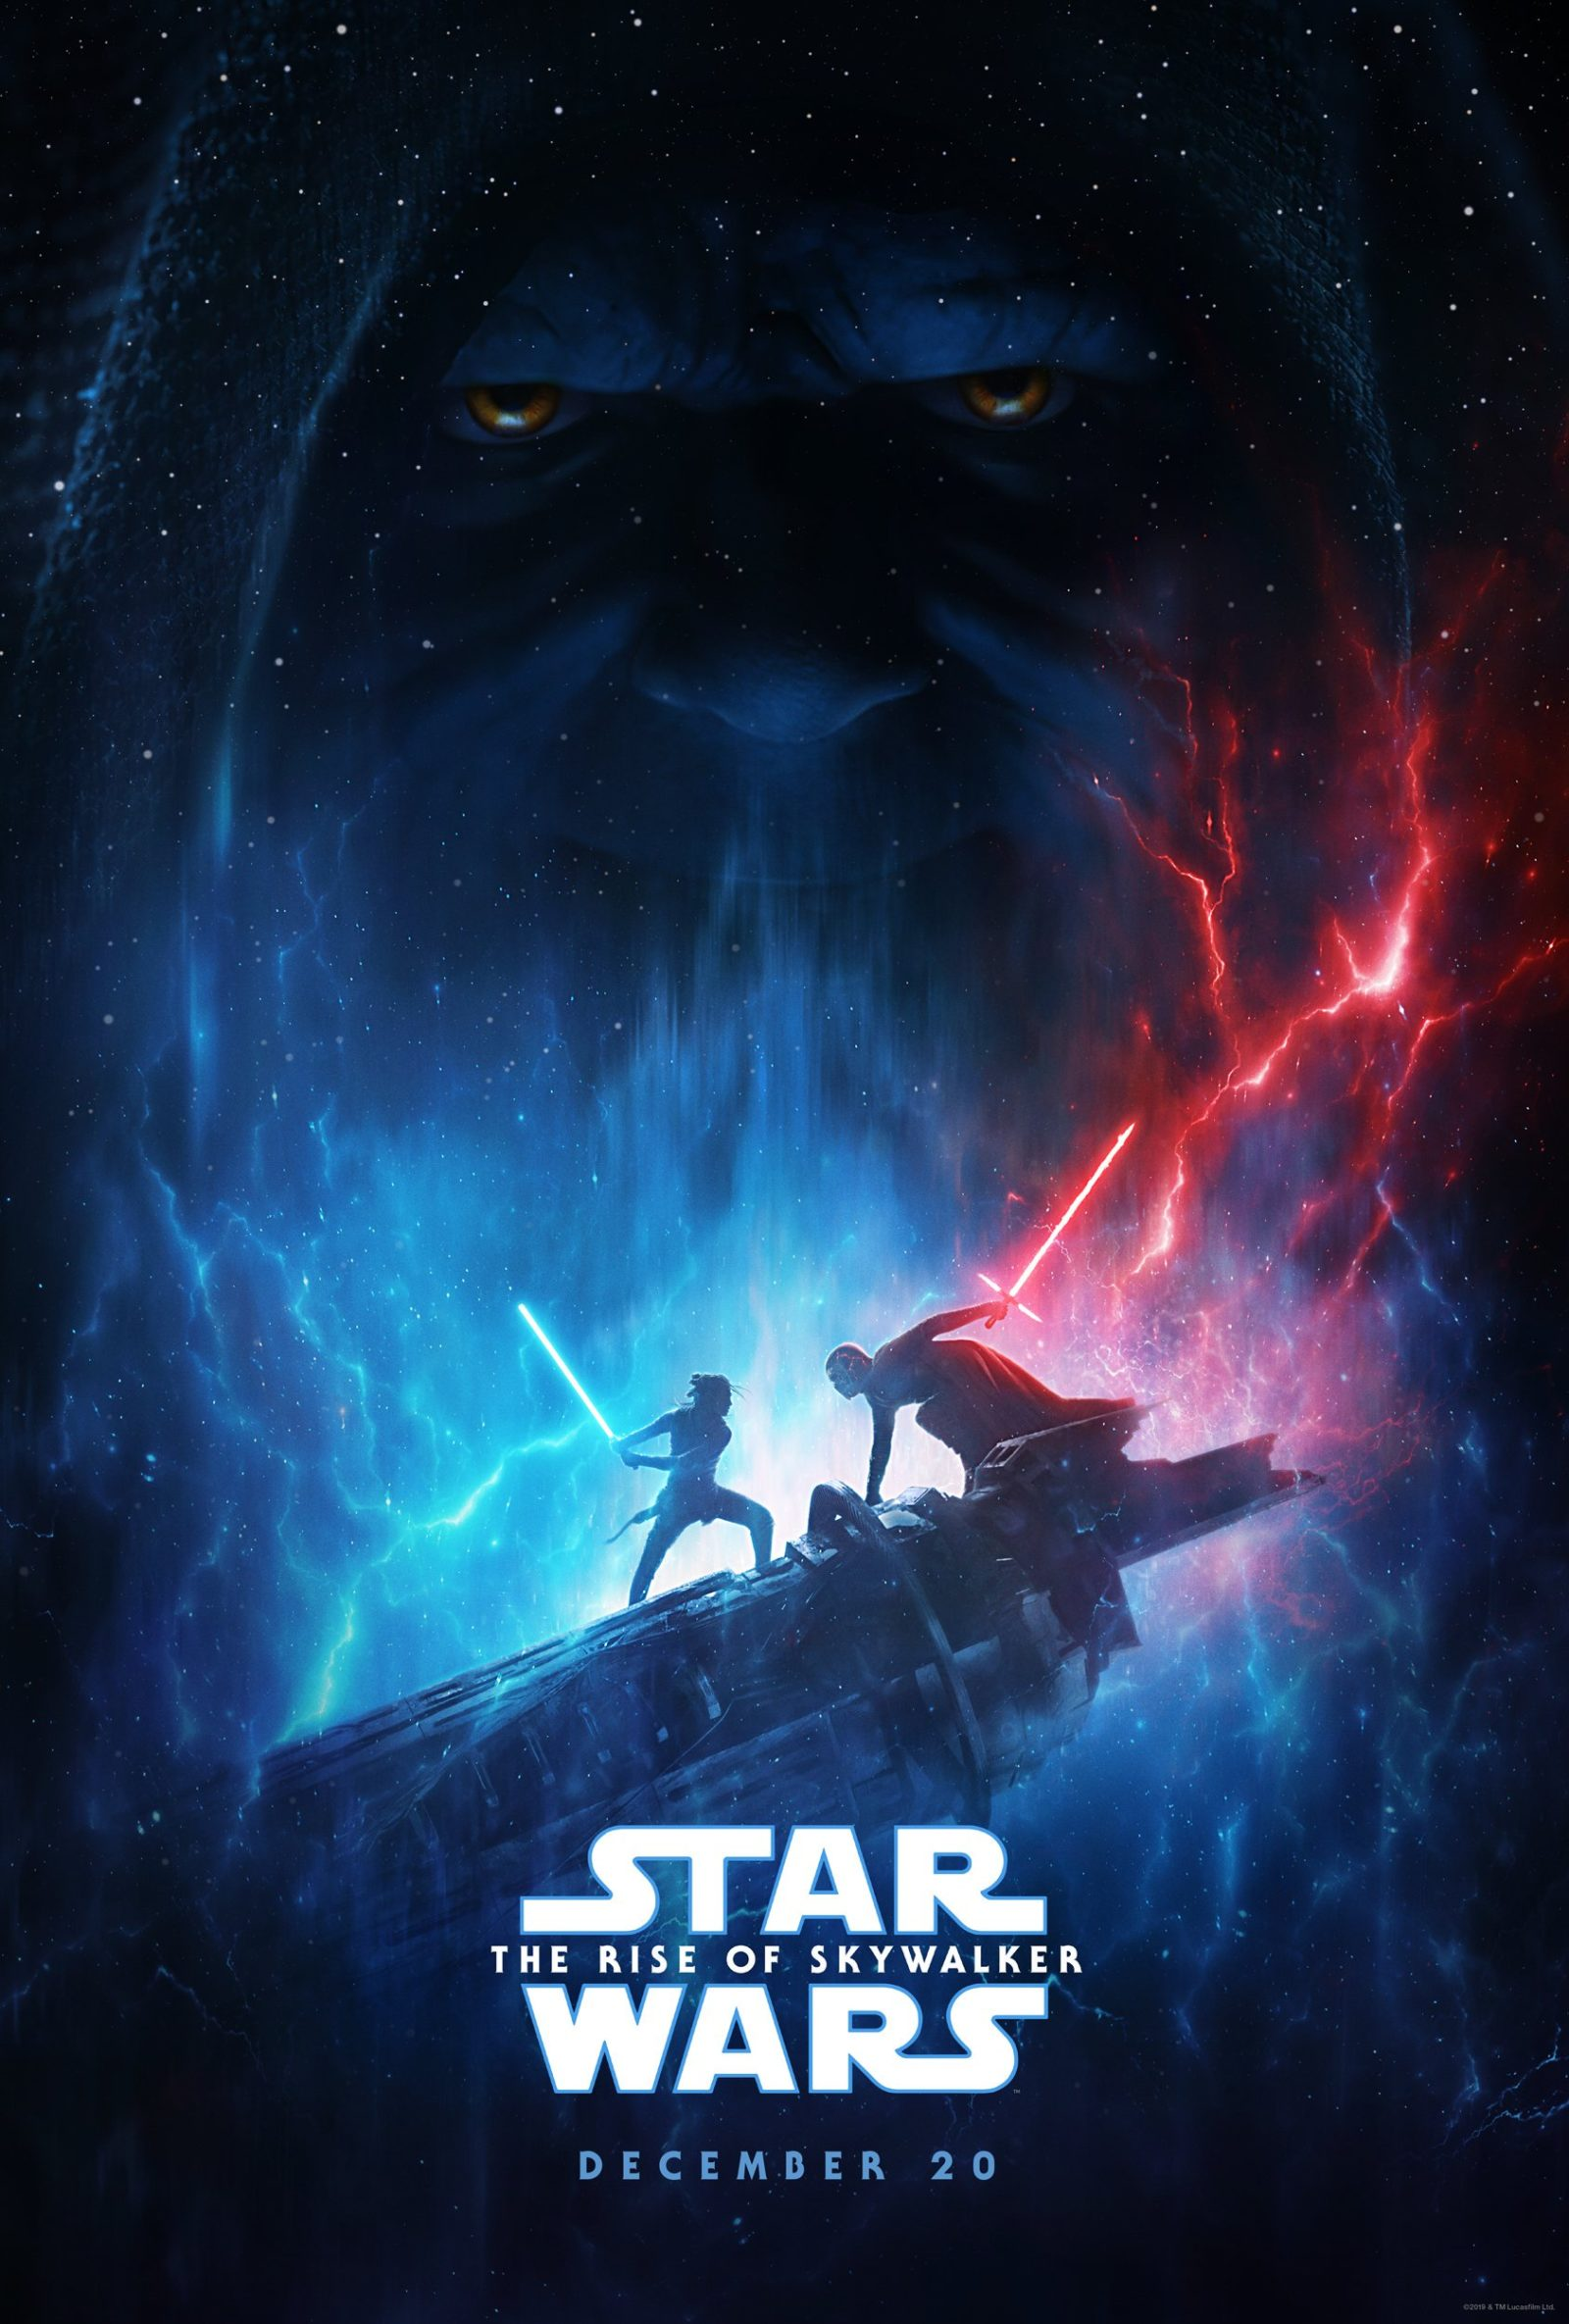 Star Wars The Rise Of Skywalker - poster